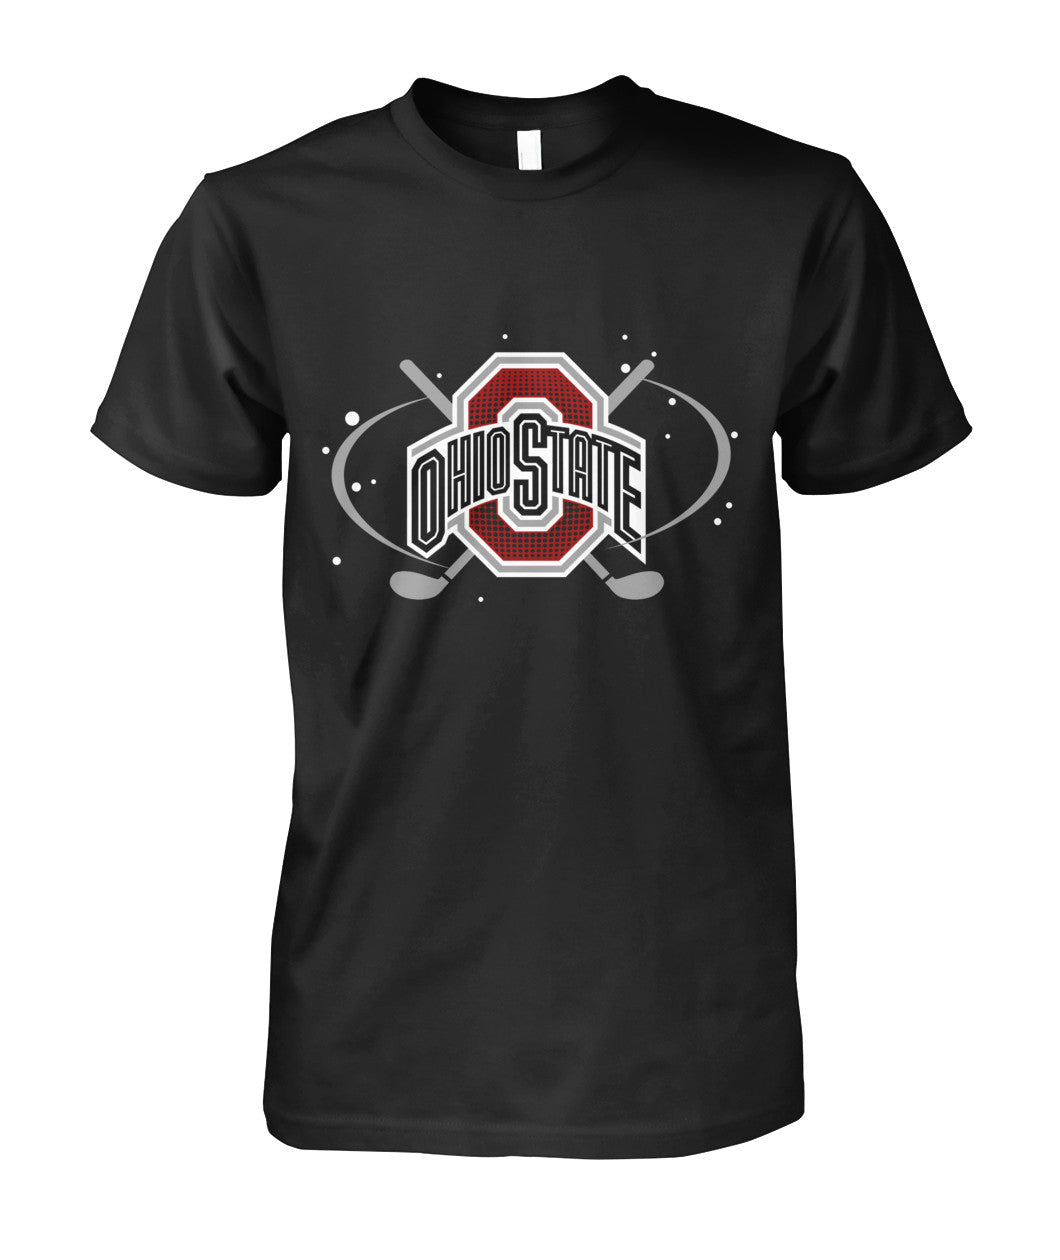 Ohio state funny golf shirt Unisex Cotton Tee